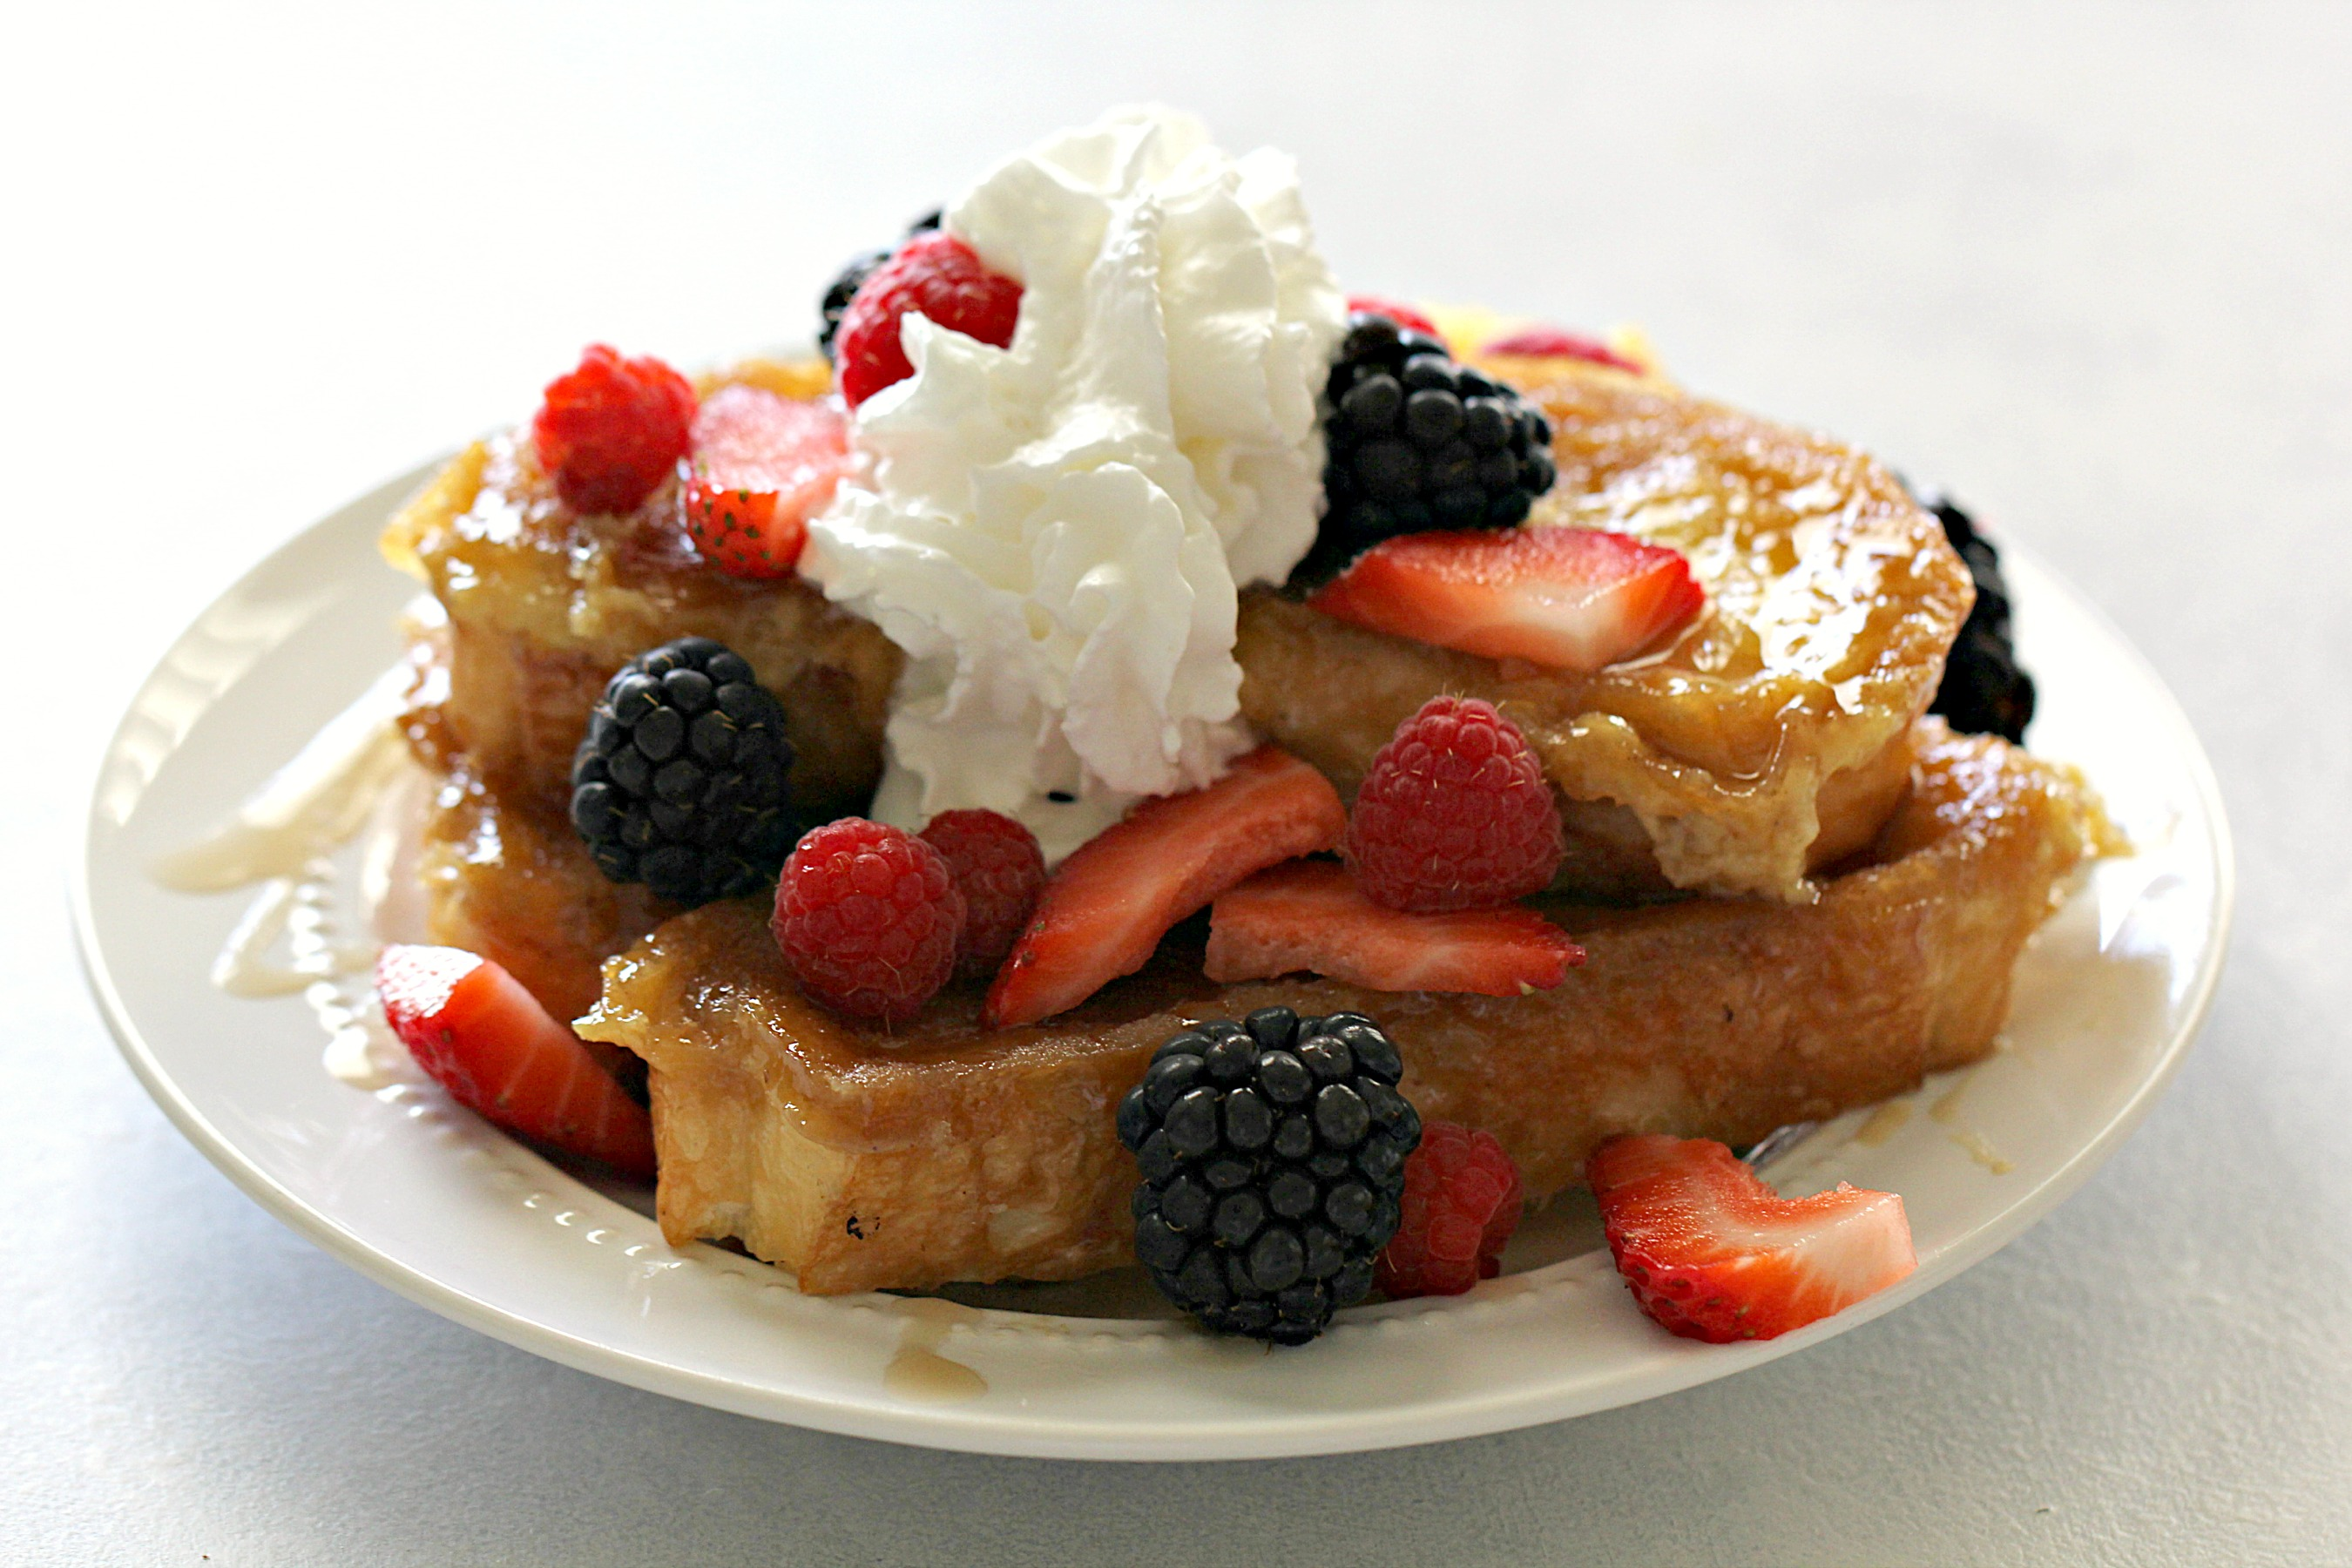 stack of creme brulee french toast topped with raspberries, strawberries, blackberries, and whipped cream